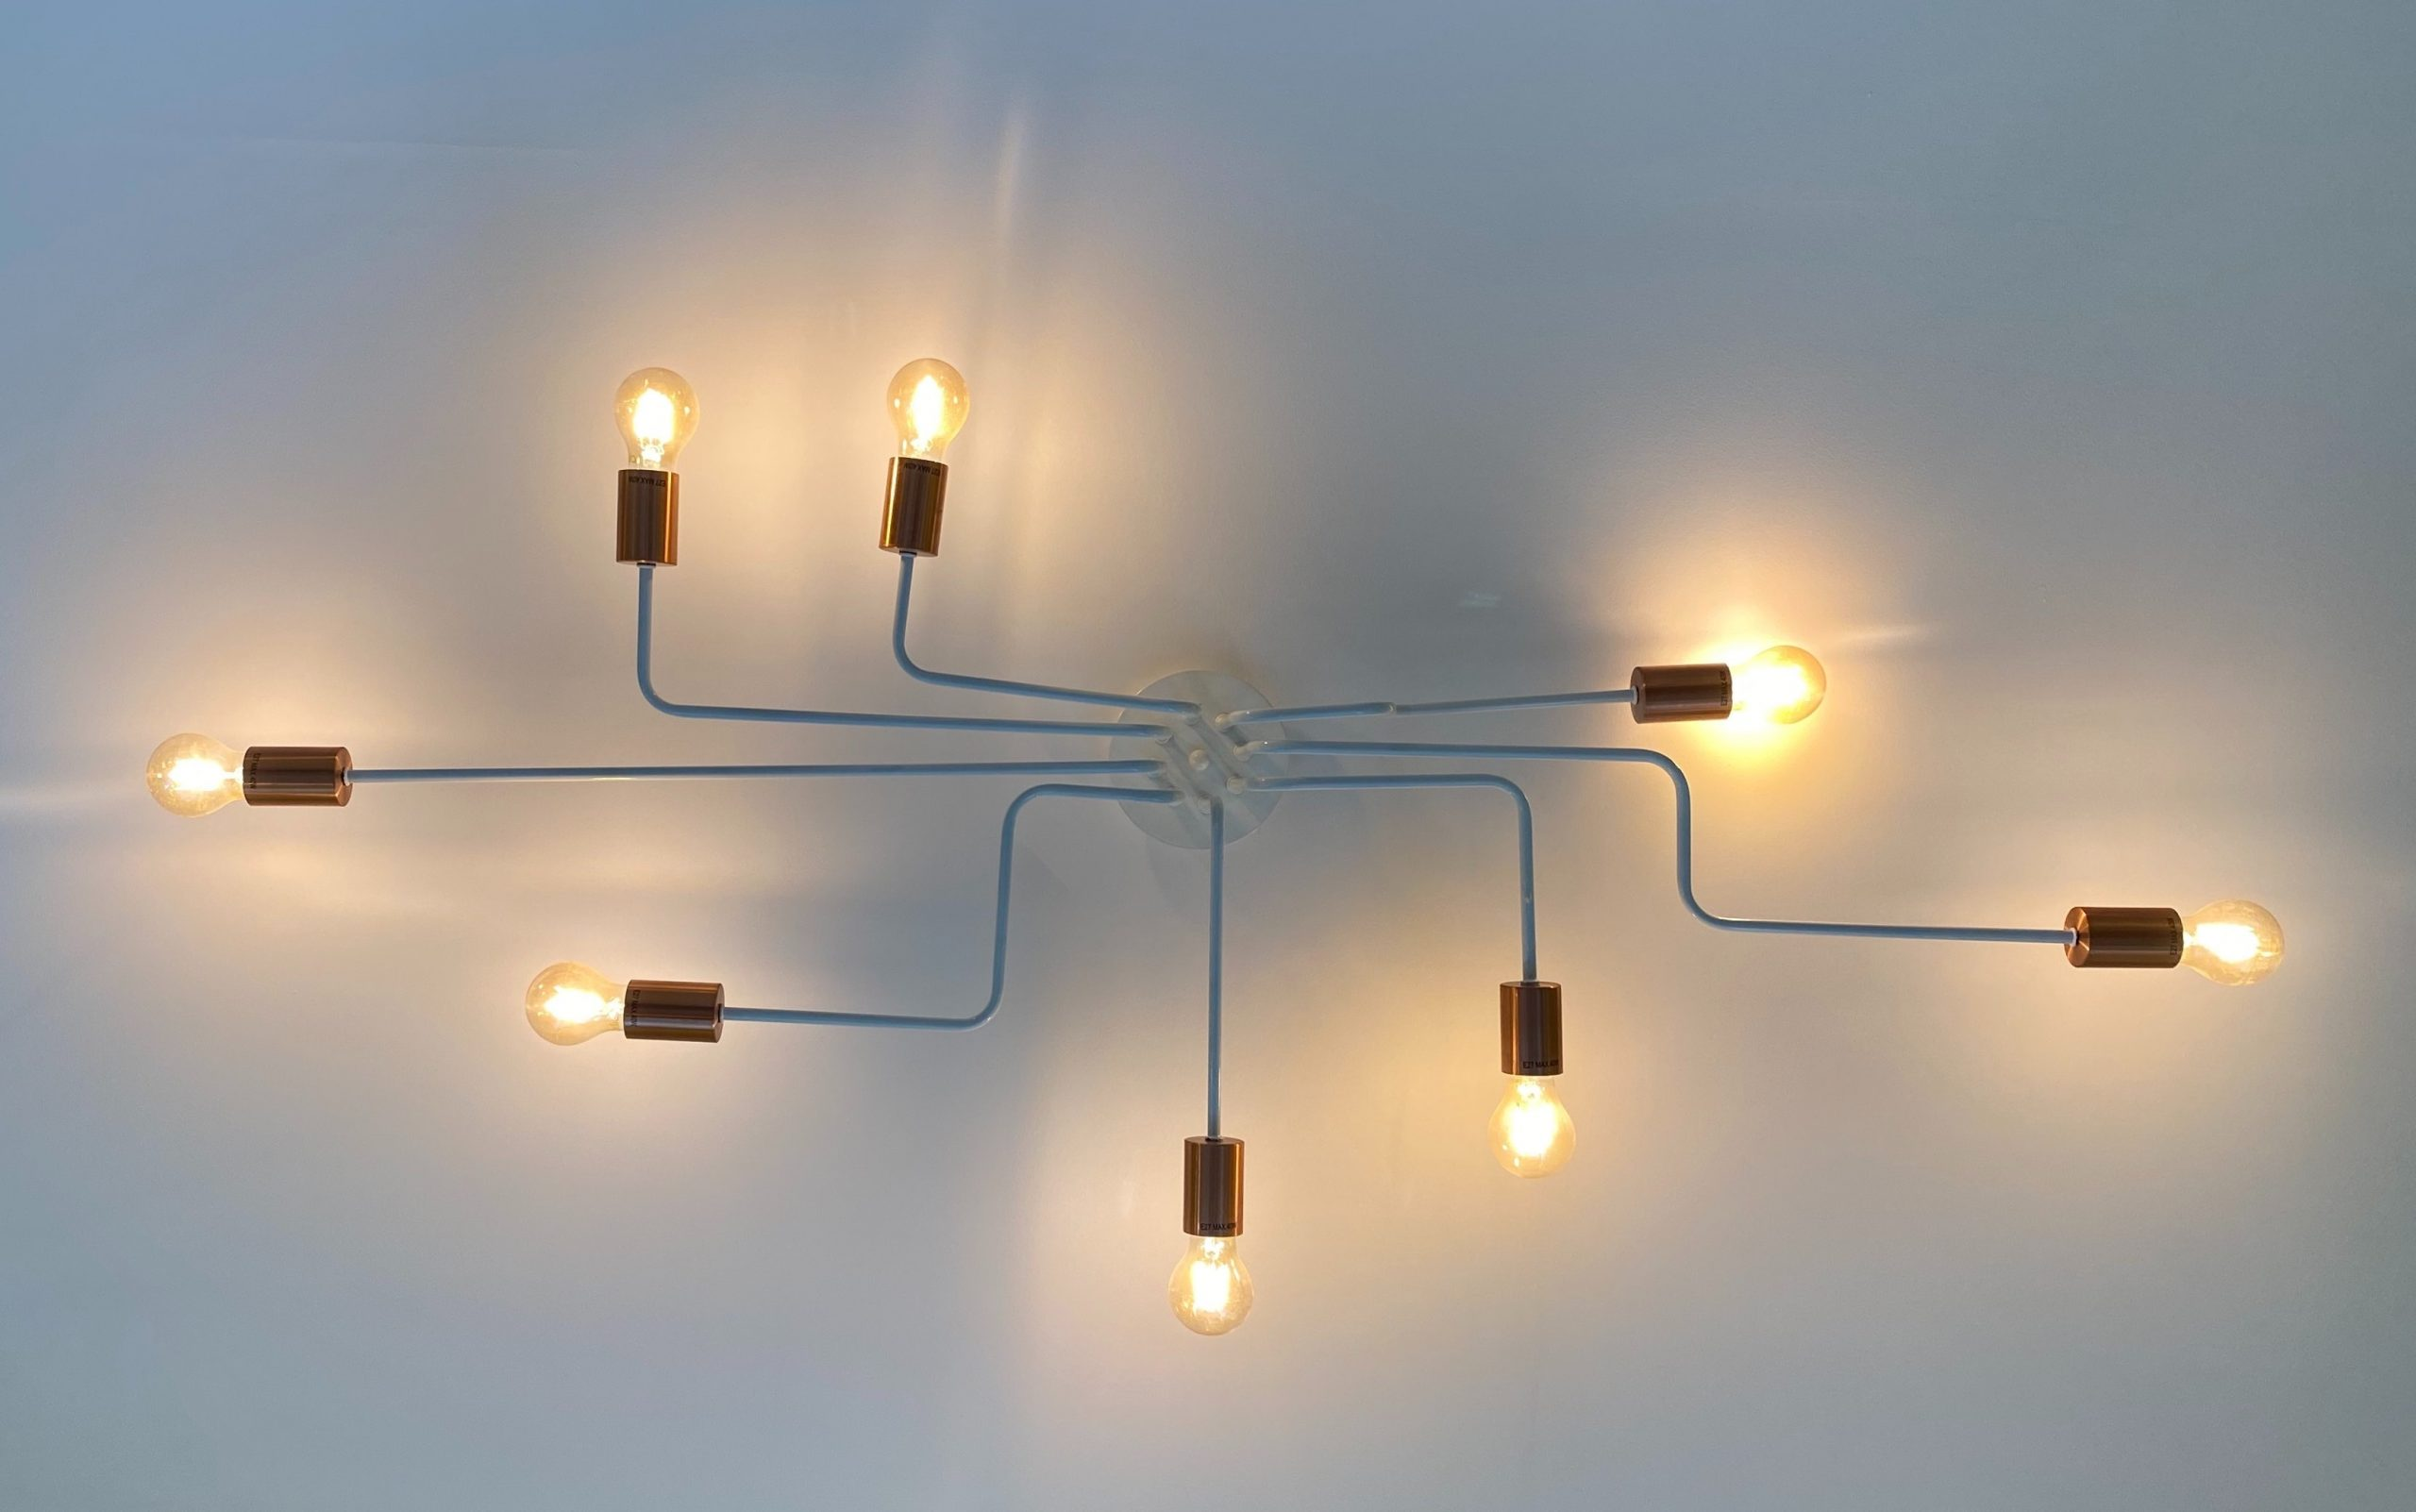 Image of several lightbulbs connected together